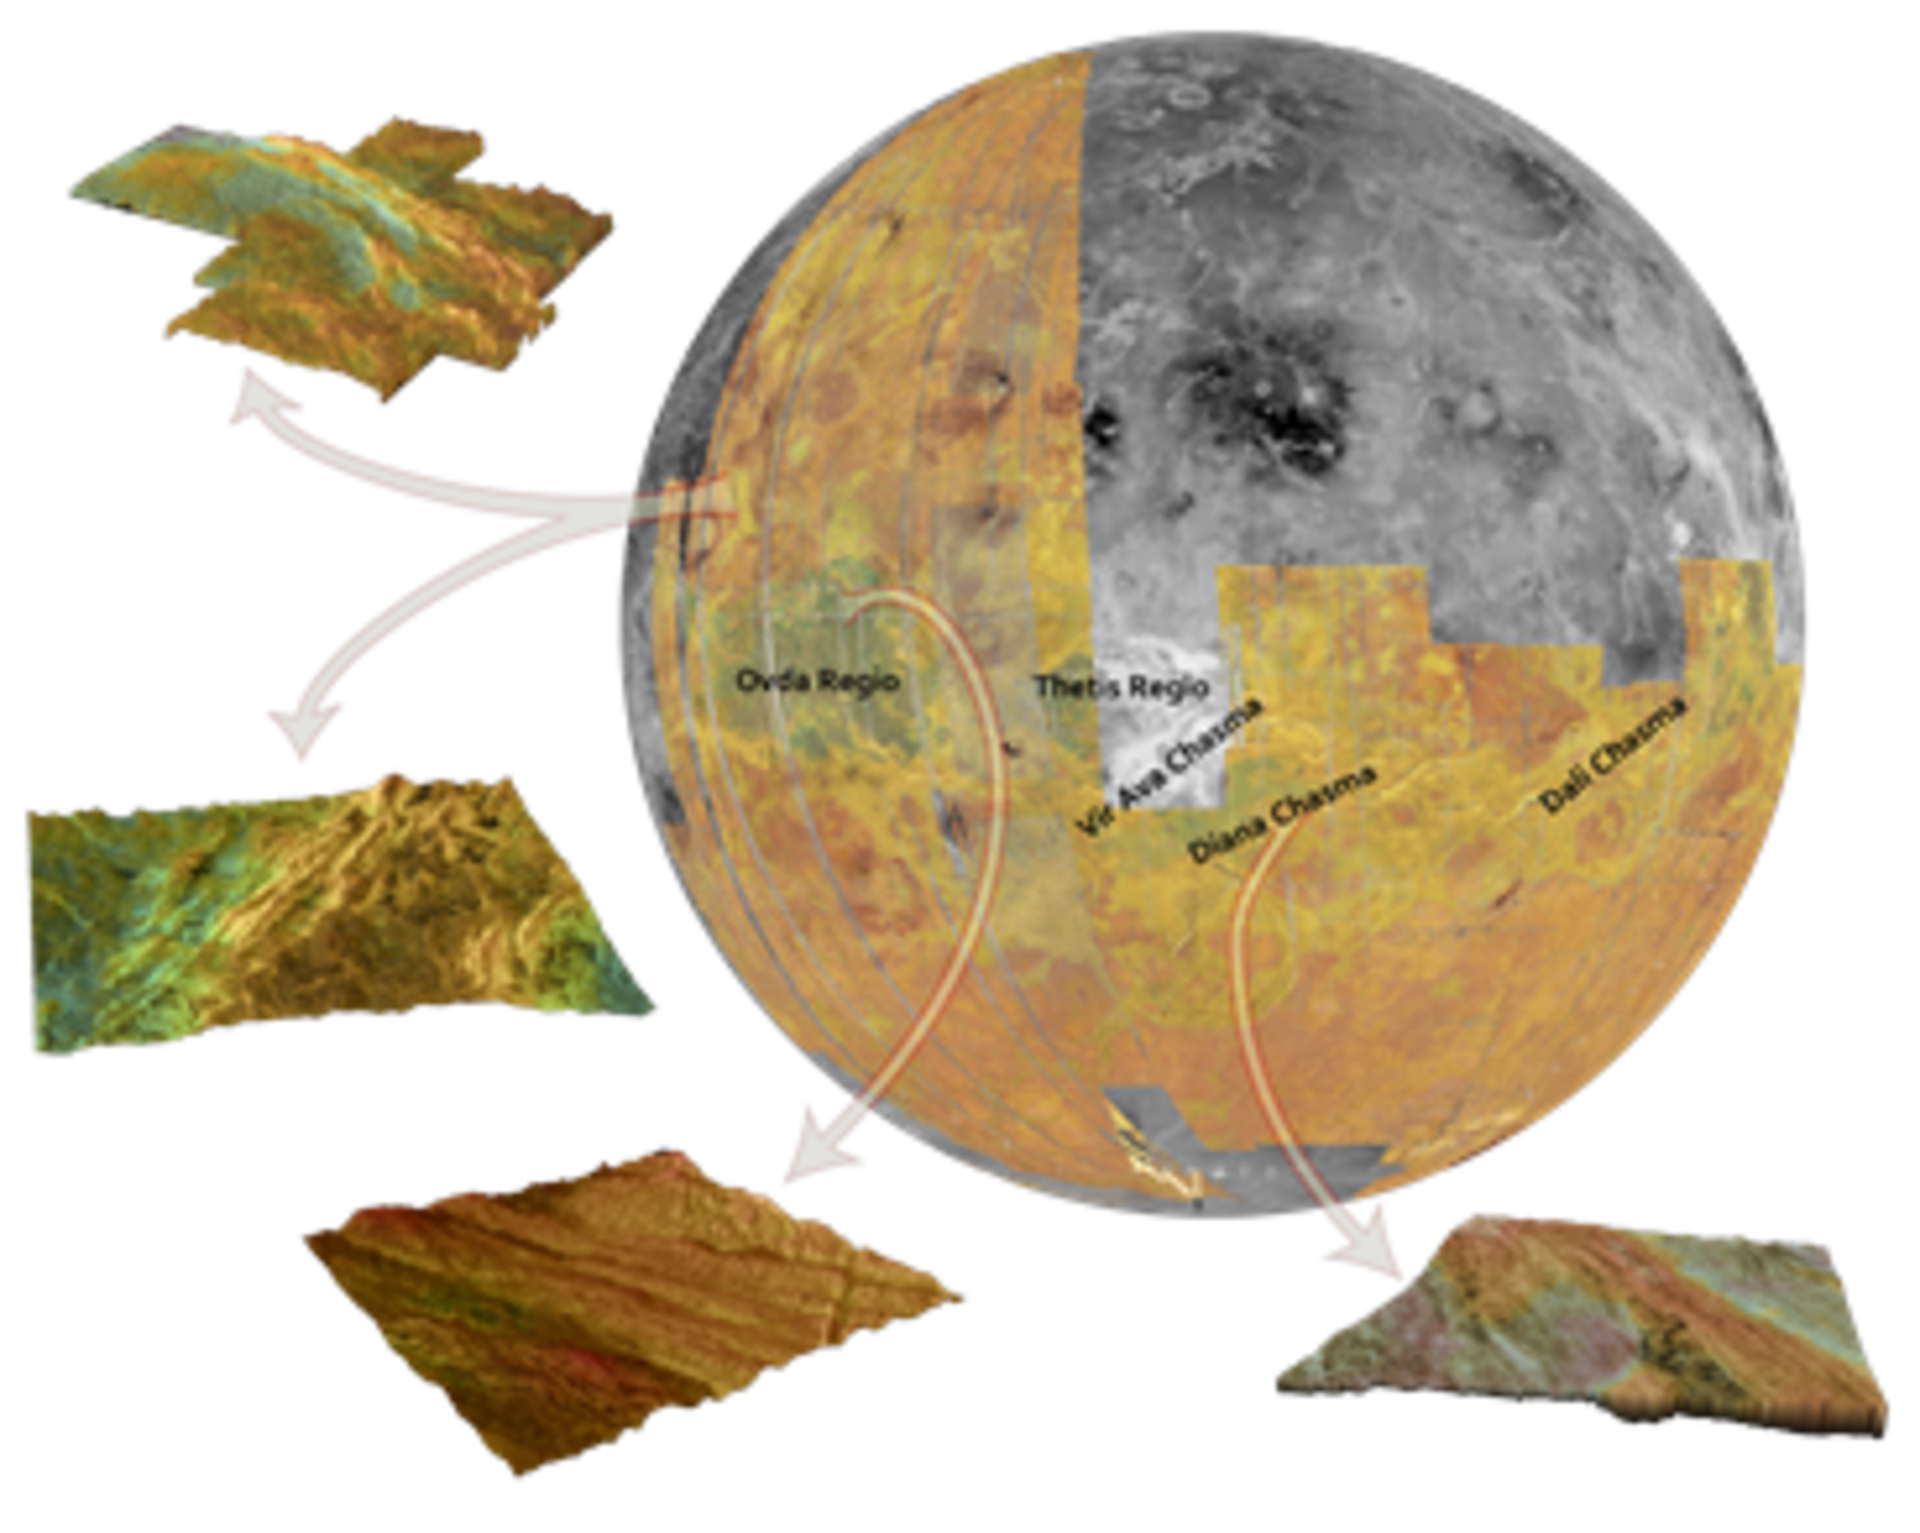 Radar observations of Venus